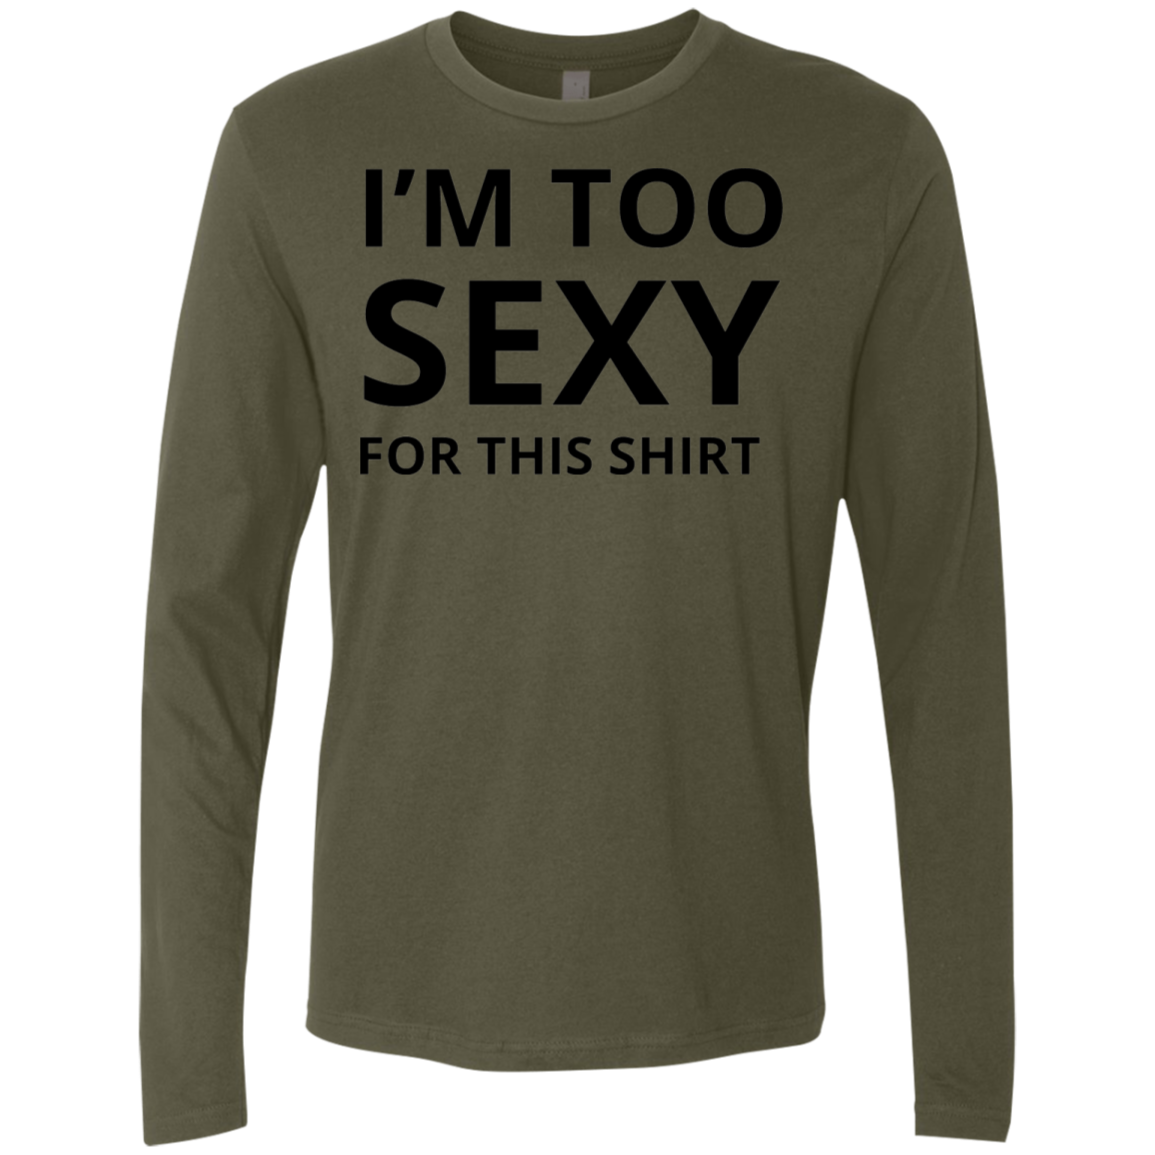 I'm Too Sexy for this Shirt Men's Long Sleeve Tee - Trendy Tees